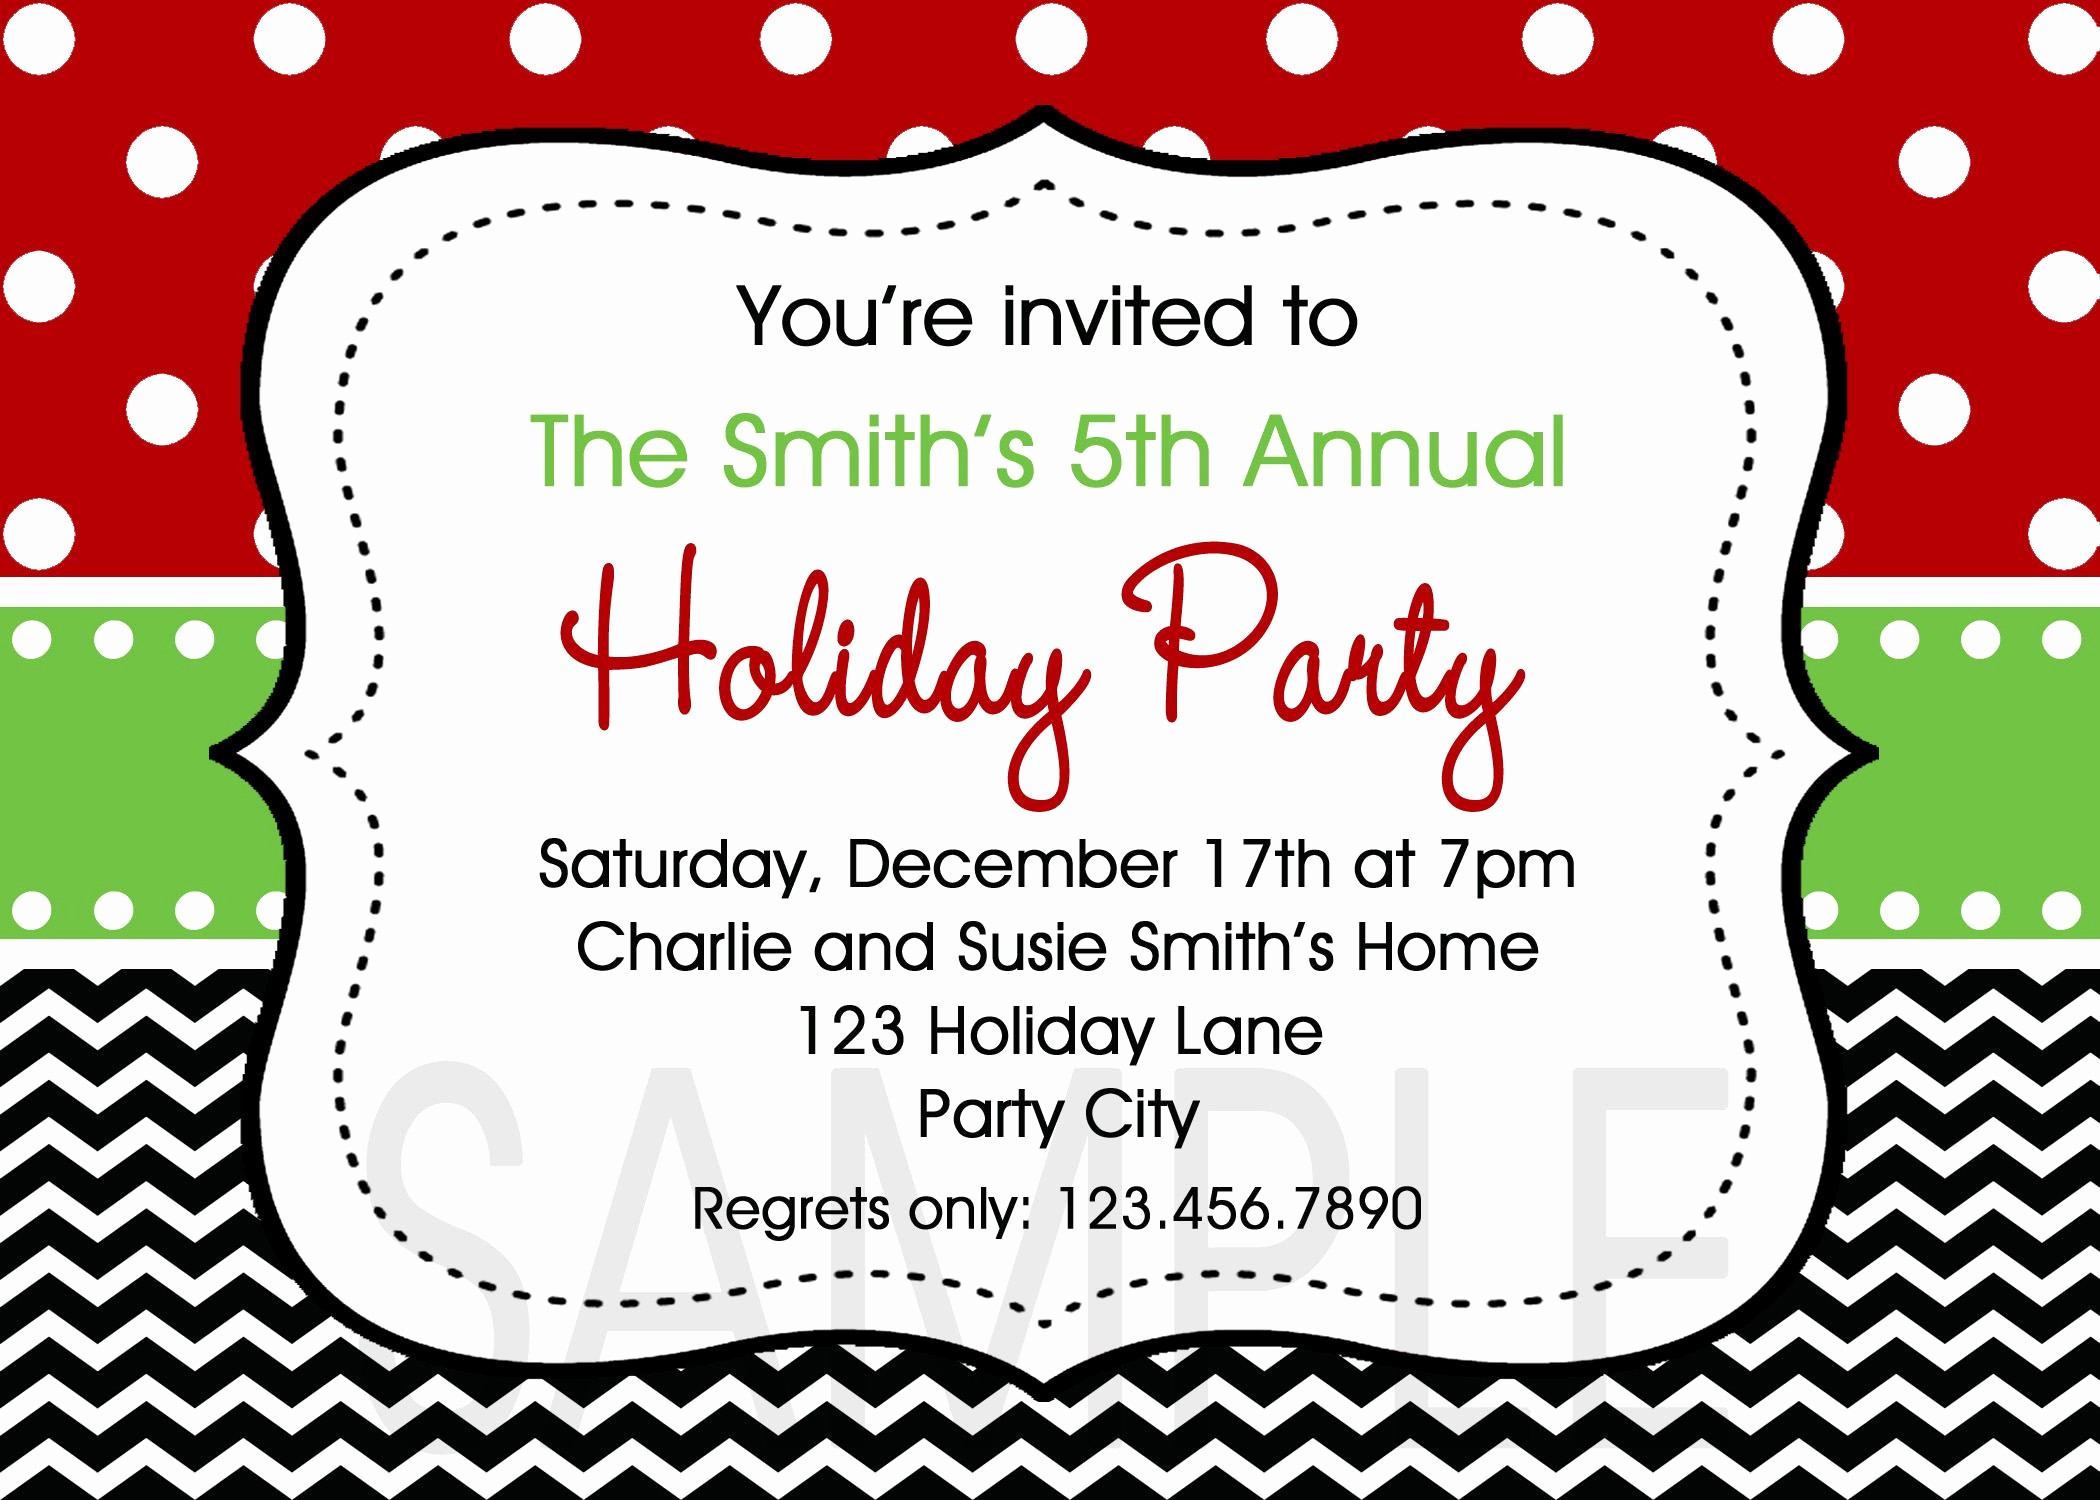 Annual Holiday Party Invitation Template Elegant Annual Holiday Party Invitation Template New Open Hous